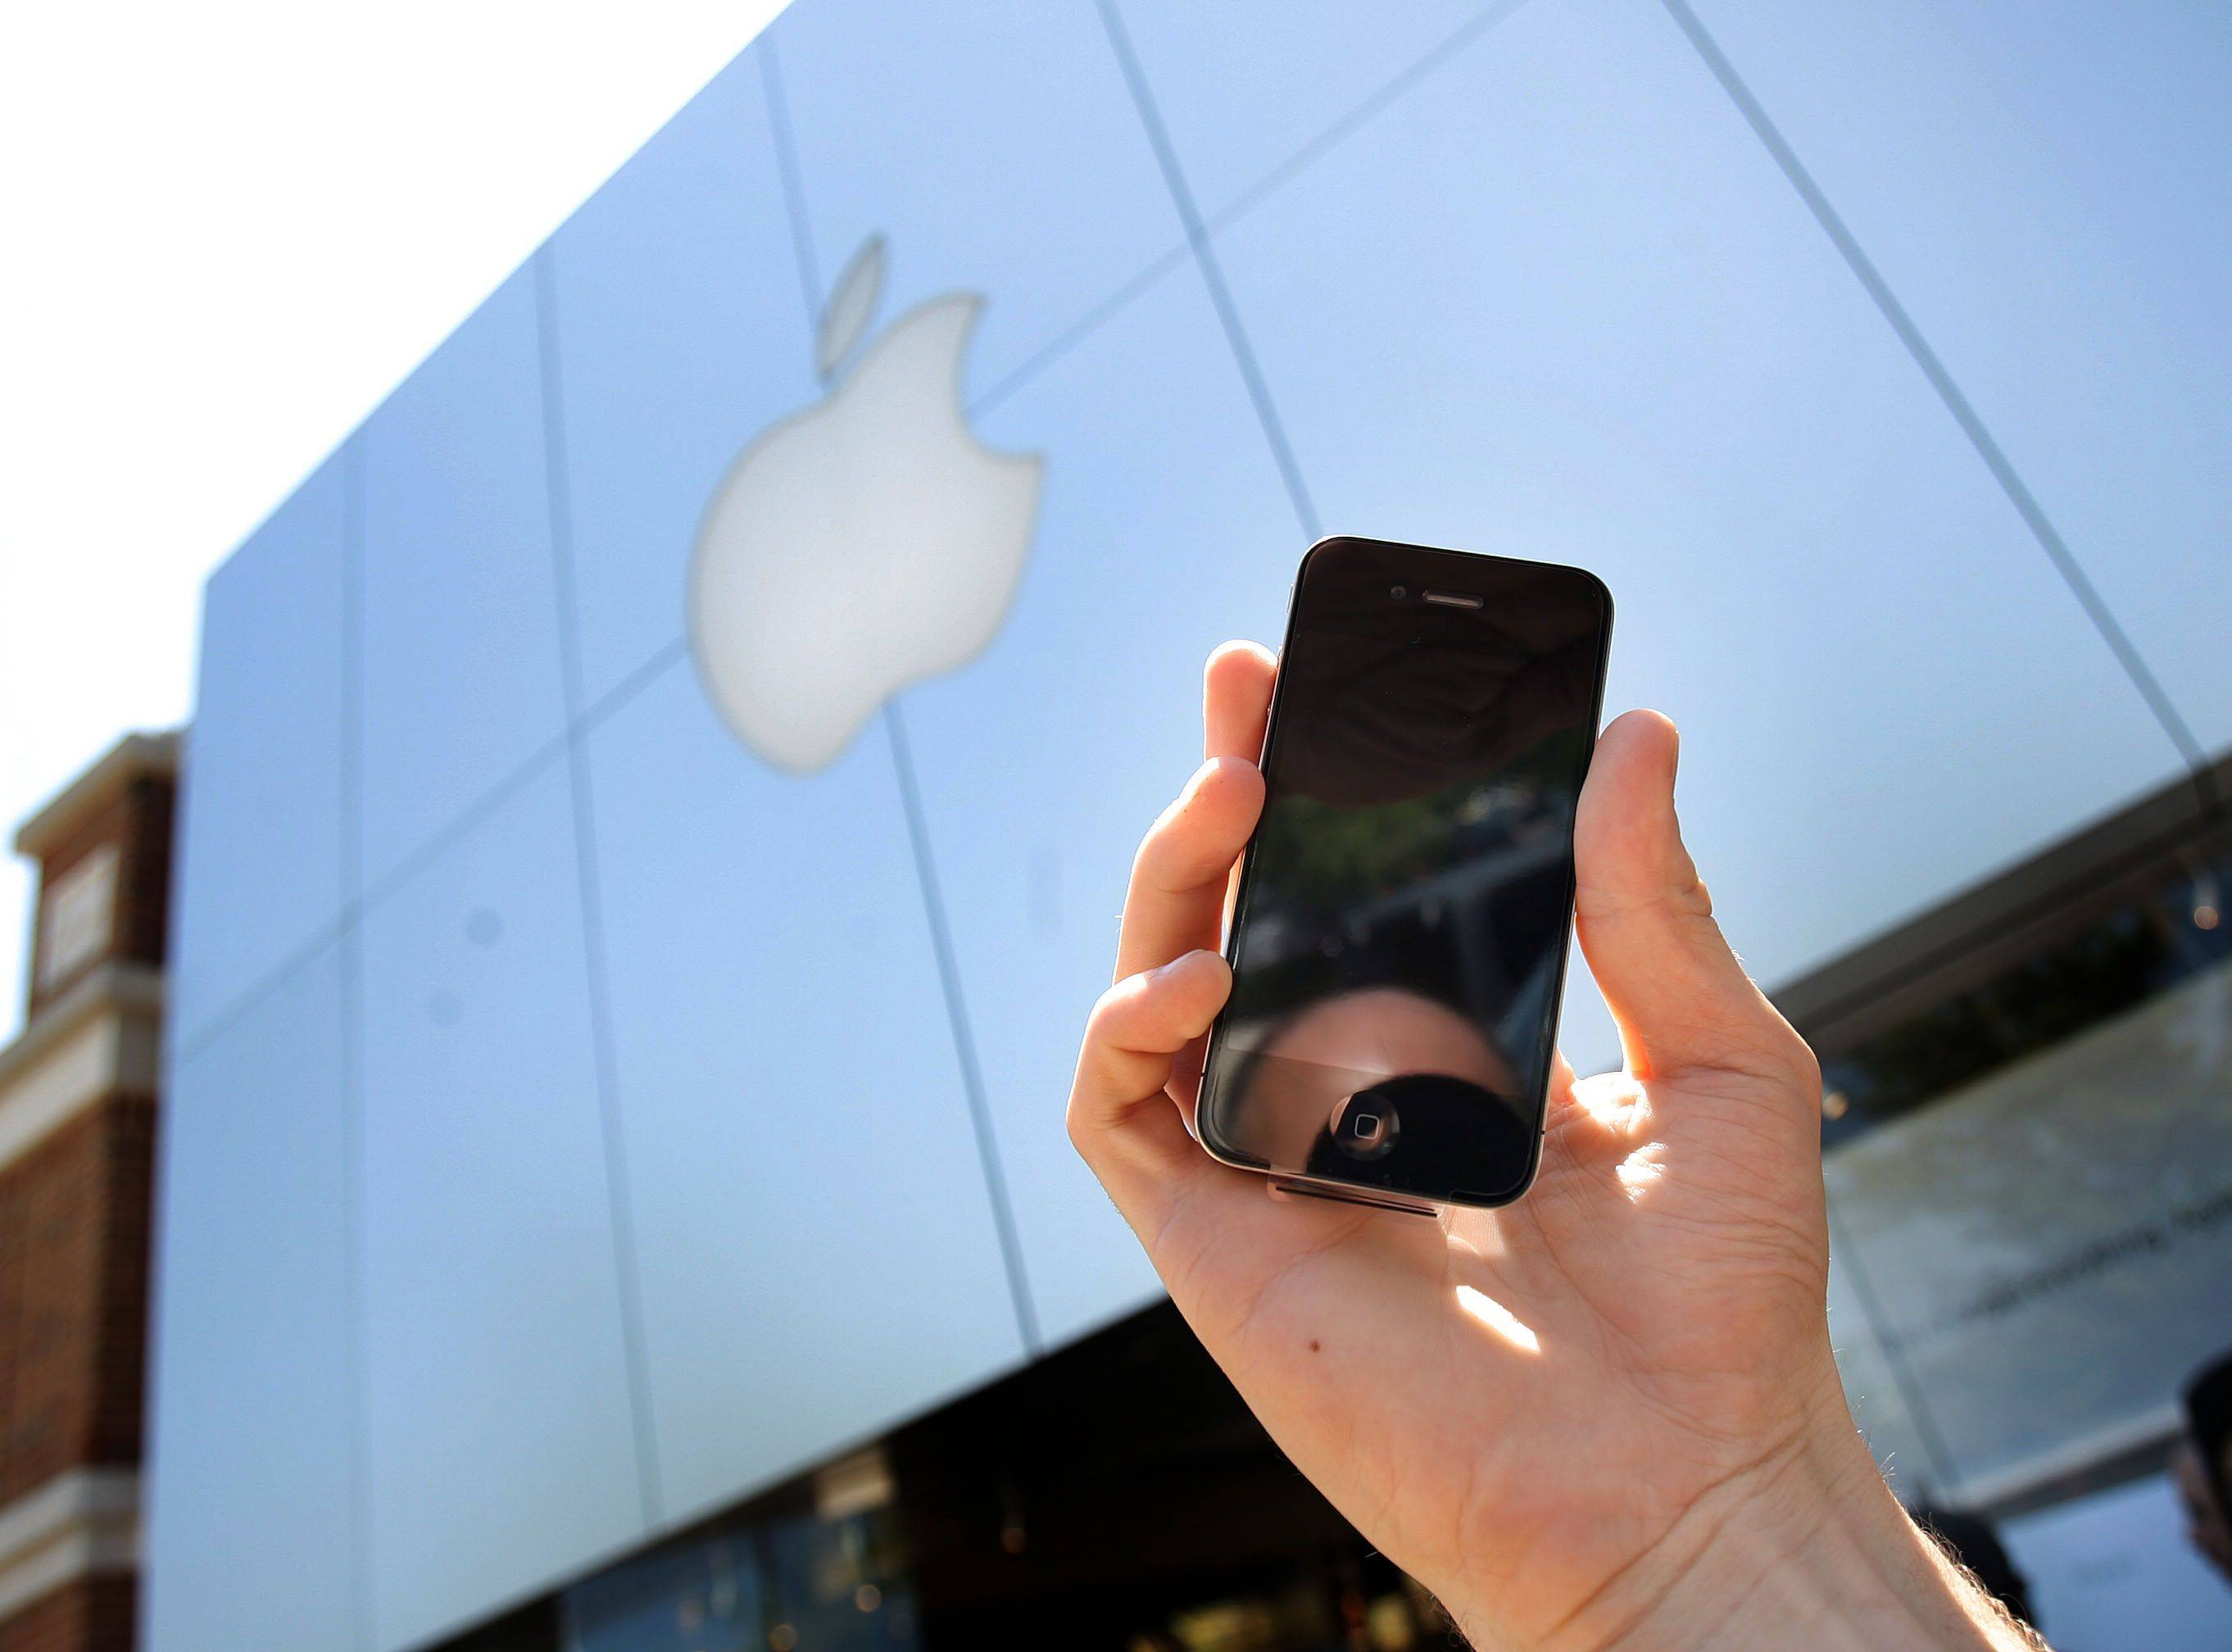 Sprint will get to sell both the new iPhone 5 and the current model, the iPhone 4, according to a report in the Wall Street Journal. The iPhone 5 will launch at the same time that AT&T Inc. and Verizon Wireless get it, the newspaper said.